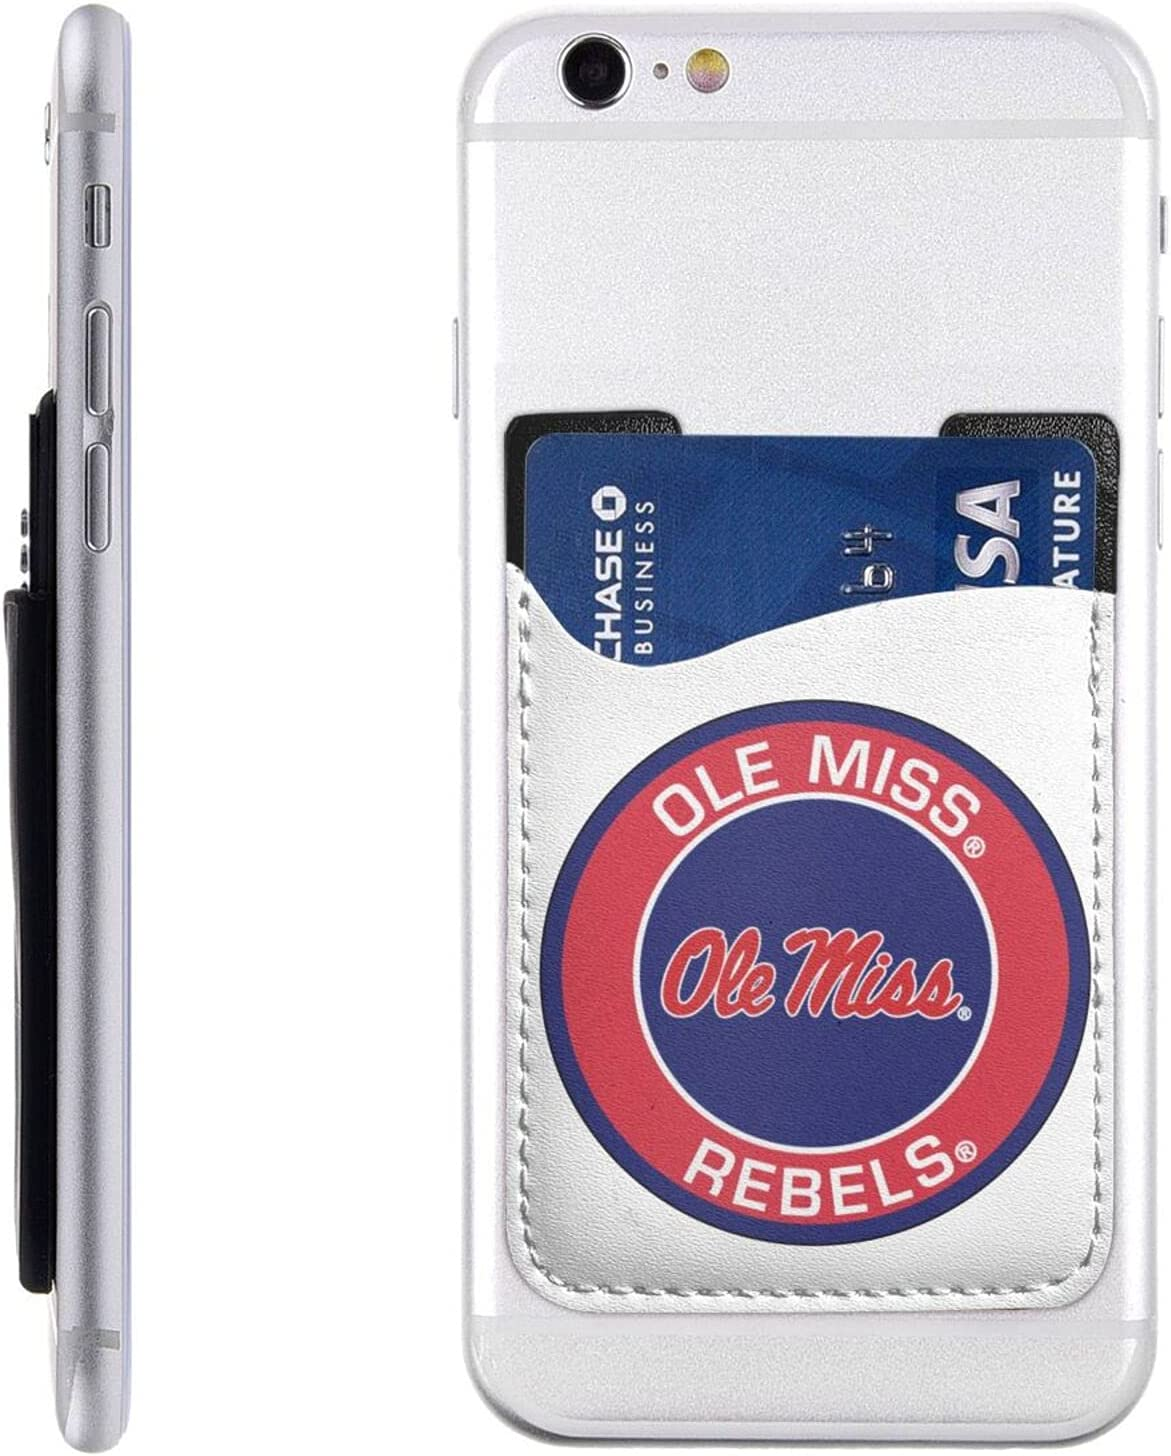 Max 49% OFF Ole Miss Rebels Cell Phone Super sale Card Stick-On Credit W Id Holder